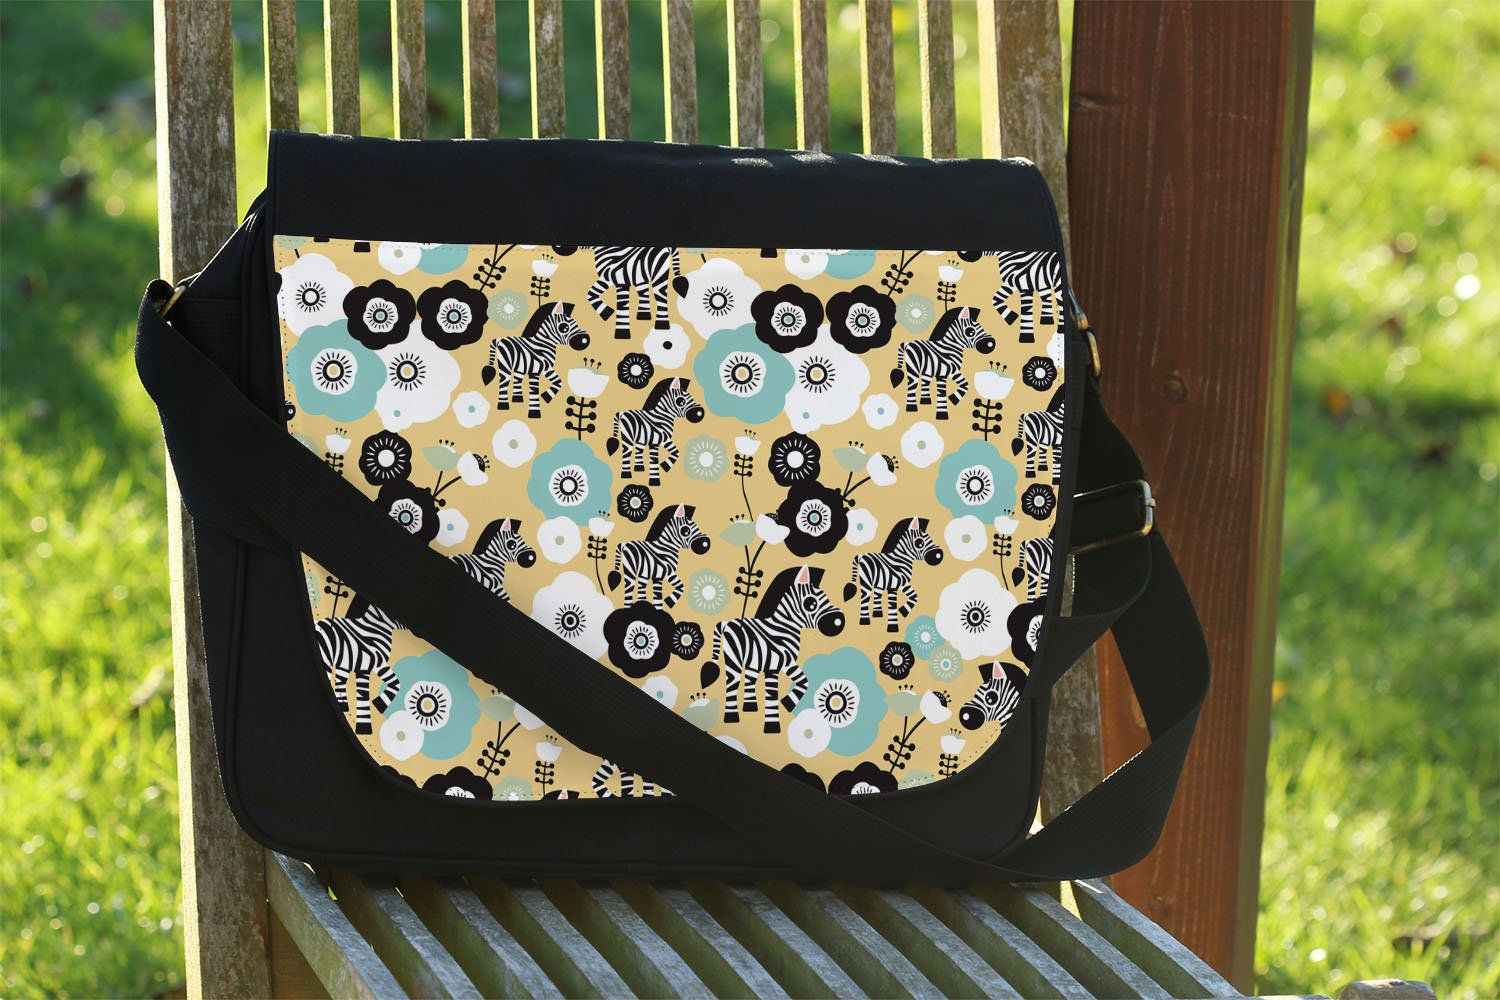 Zebra Blossoms Yellow - One Size Messenger Bag - Messenger Bag by Queen of Cases (Image #2)